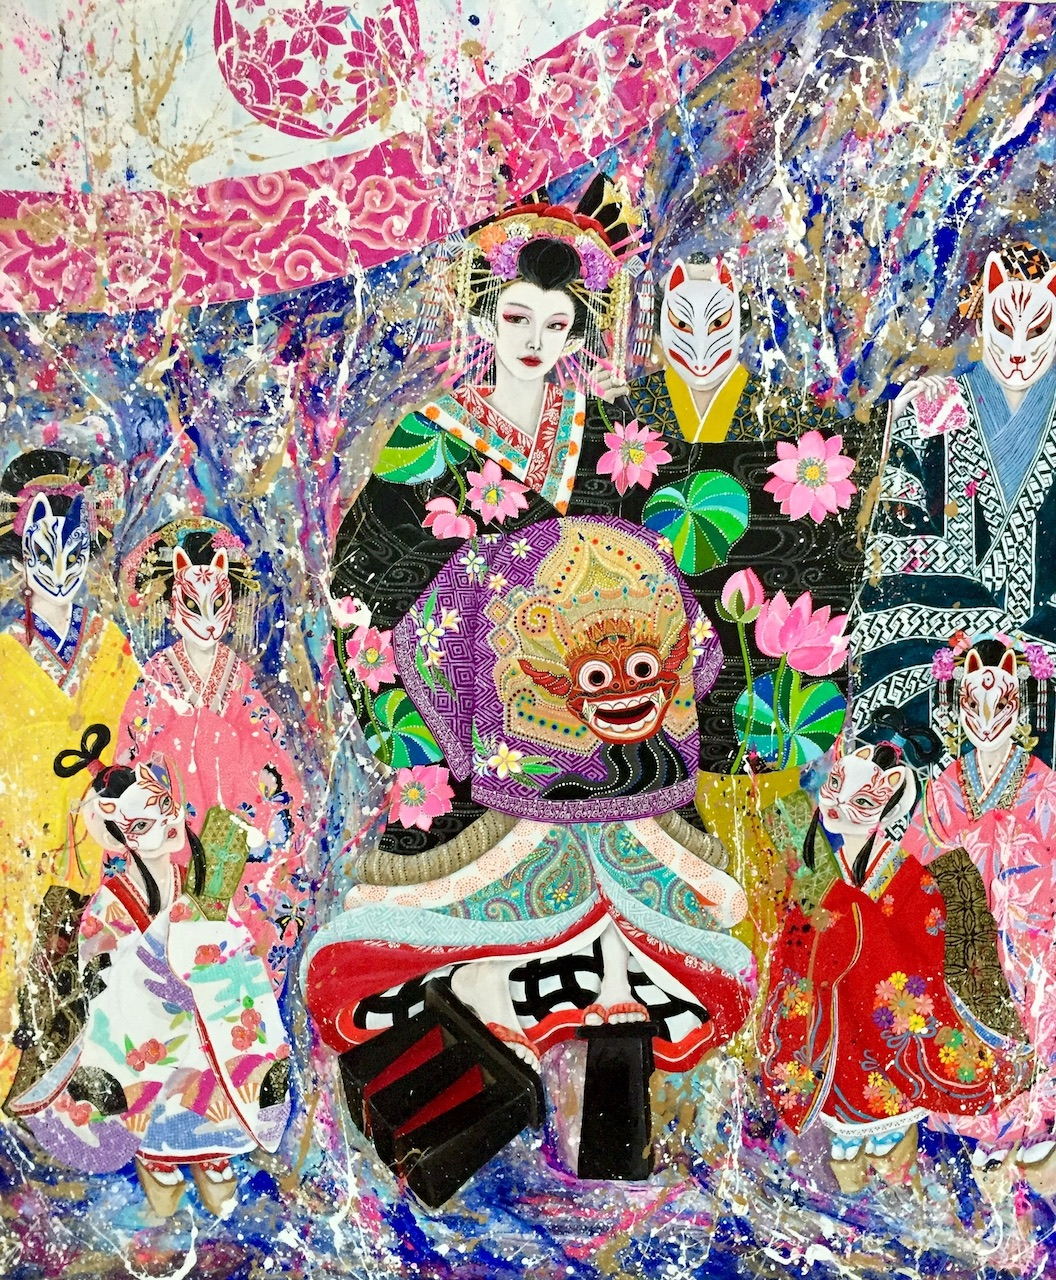 『 逢魔が時 〜花魁道中〜/in the twilight zone 』(72.7cm×60.6cm/F20号) Universal Indonesia Prize 金賞受賞